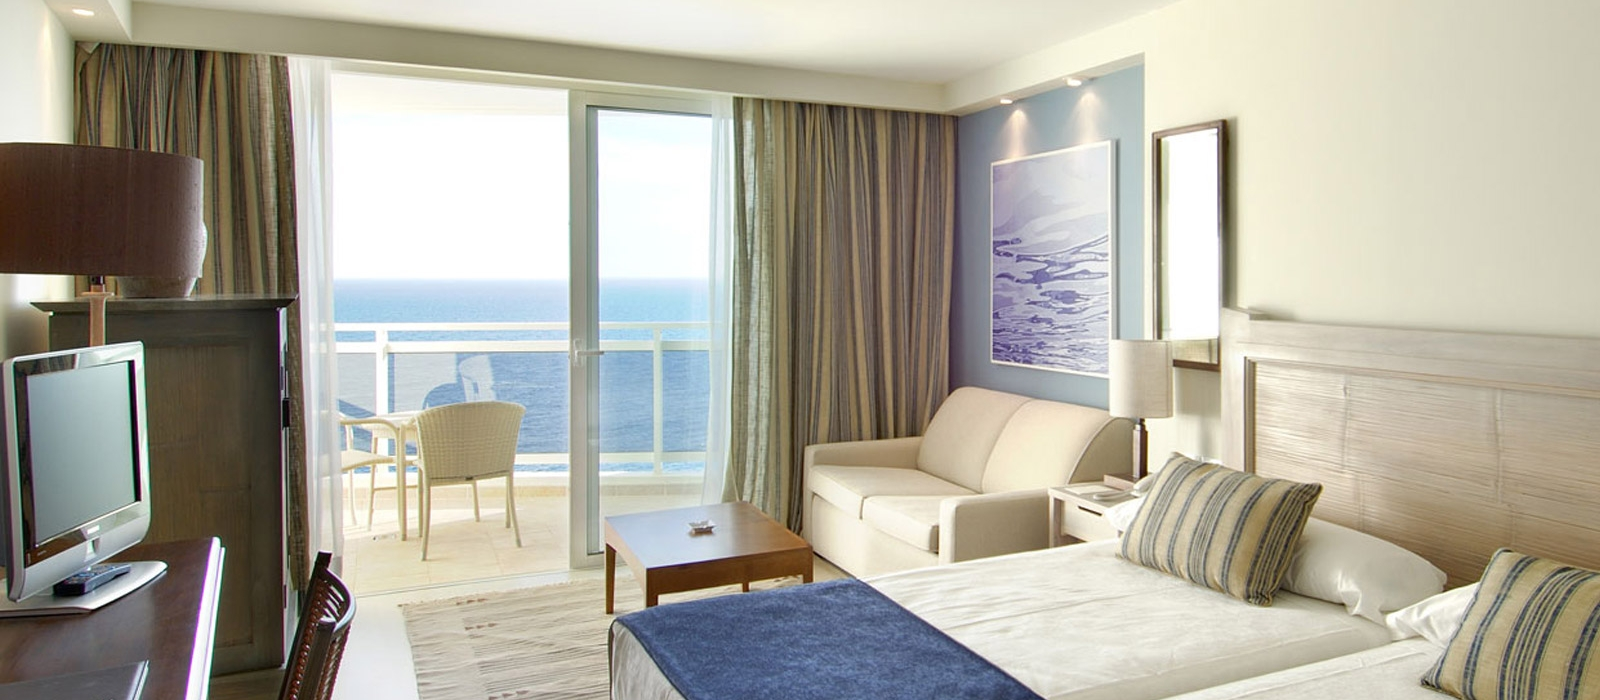 Rooms Hotel Tenerife Golf - Vincci Hotels - Superior Double Rooms